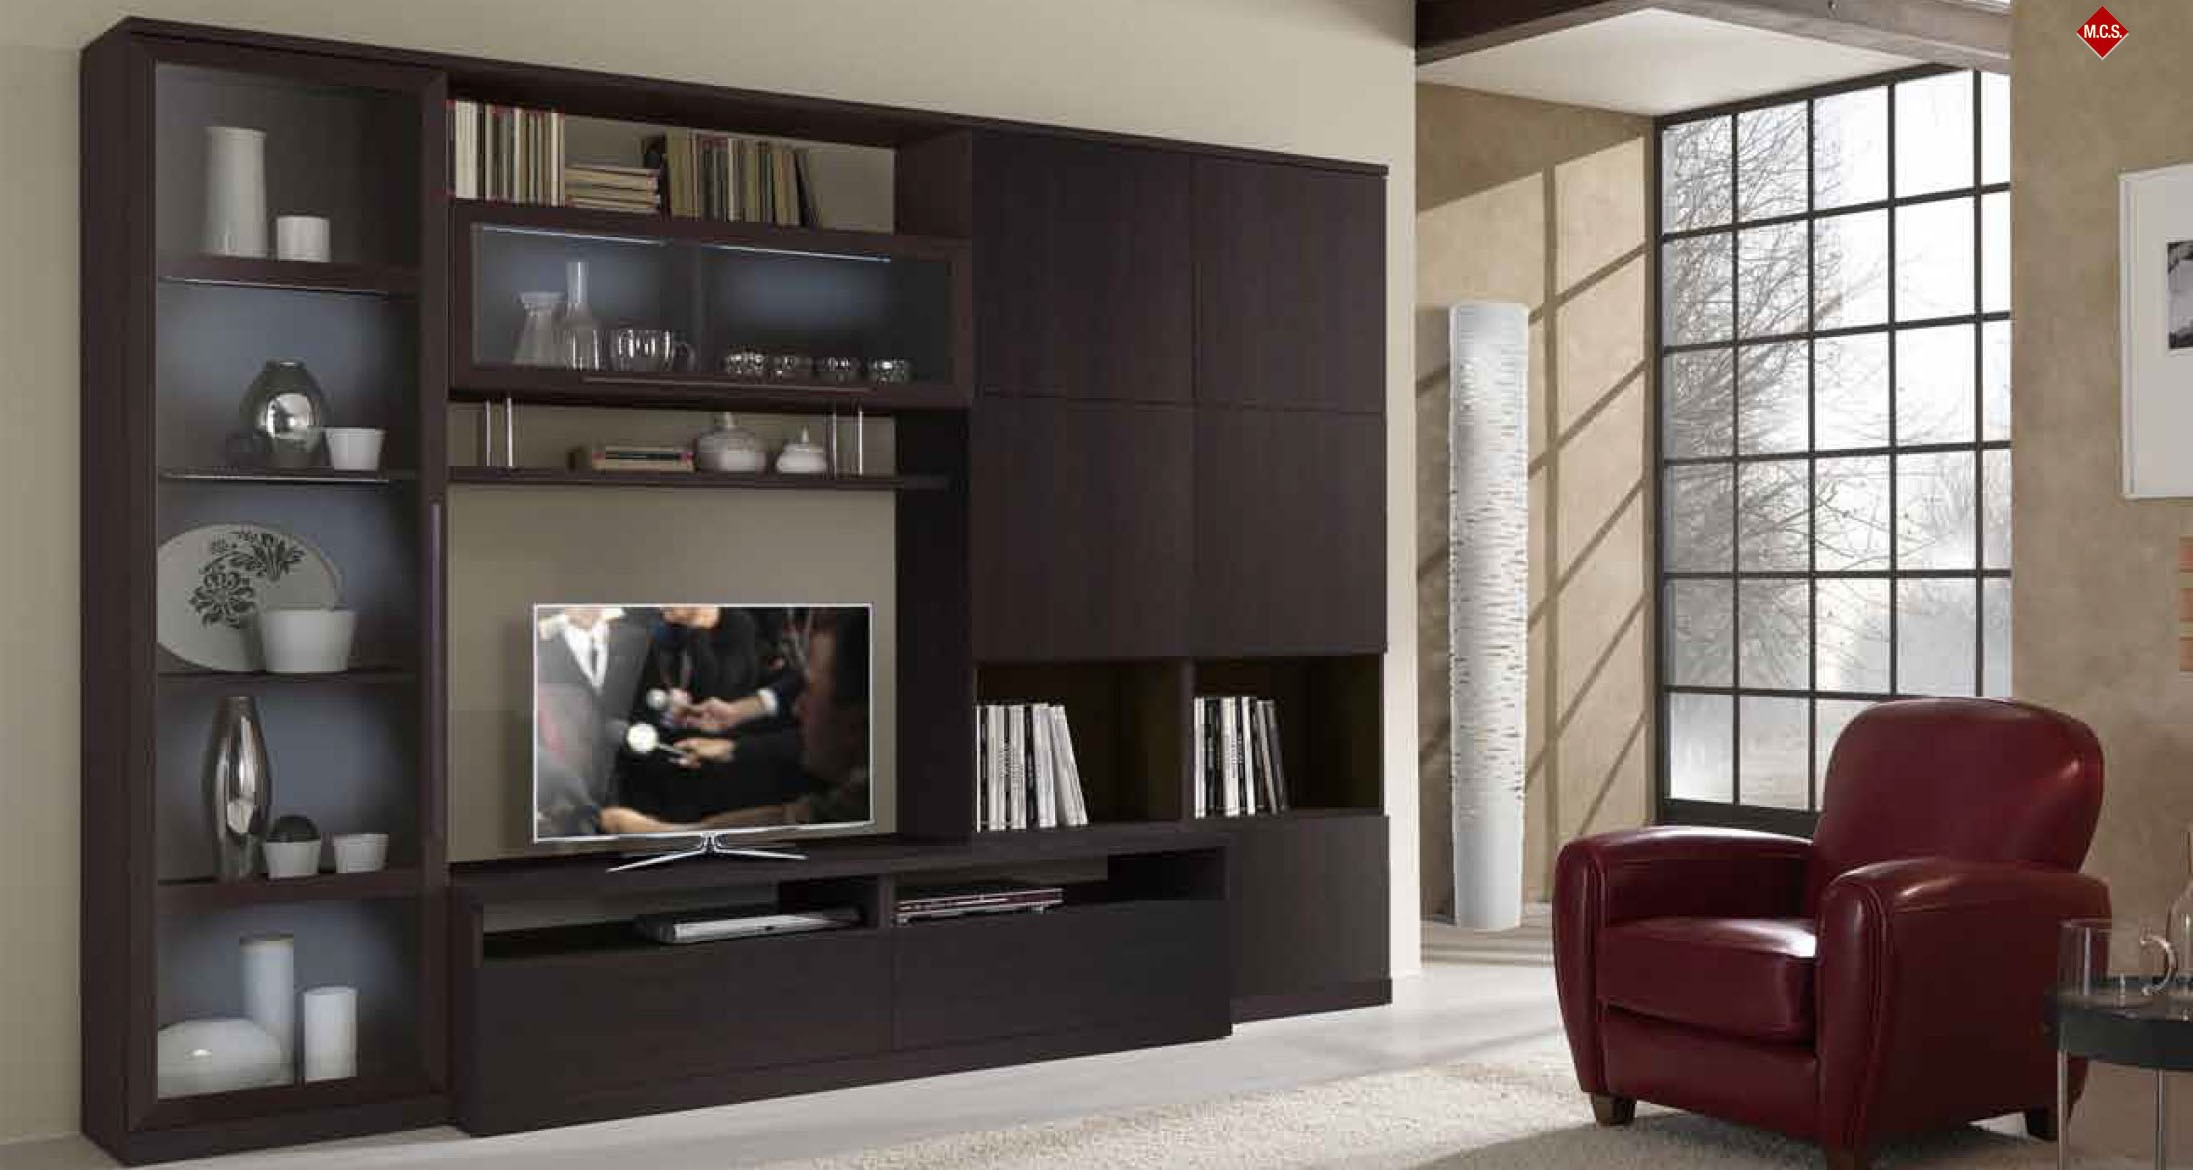 20 modern tv unit design ideas for bedroom living room for Wall mounted tv cabinet design ideas